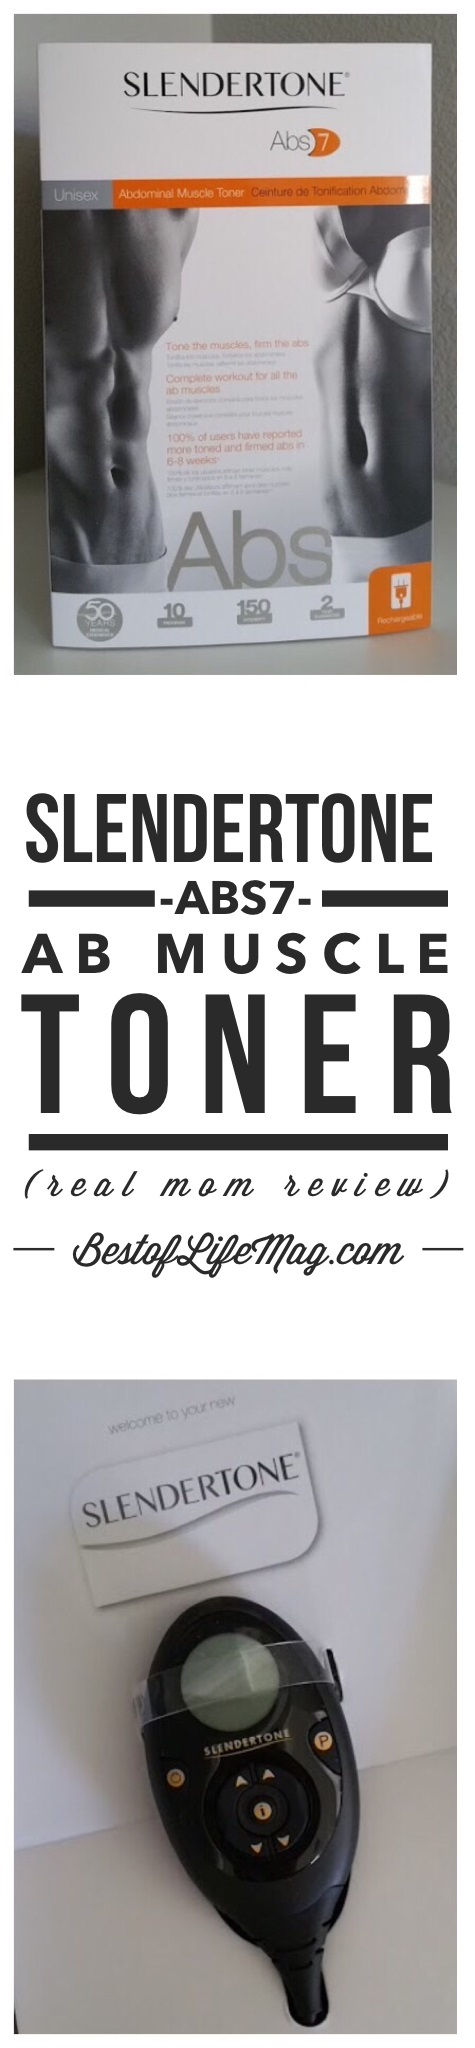 The Slendertone Abs7 Abdominal Muscle Toner is a unisex belt and perfect for both men and women within a variety of fitness levels. via @amybarseghian